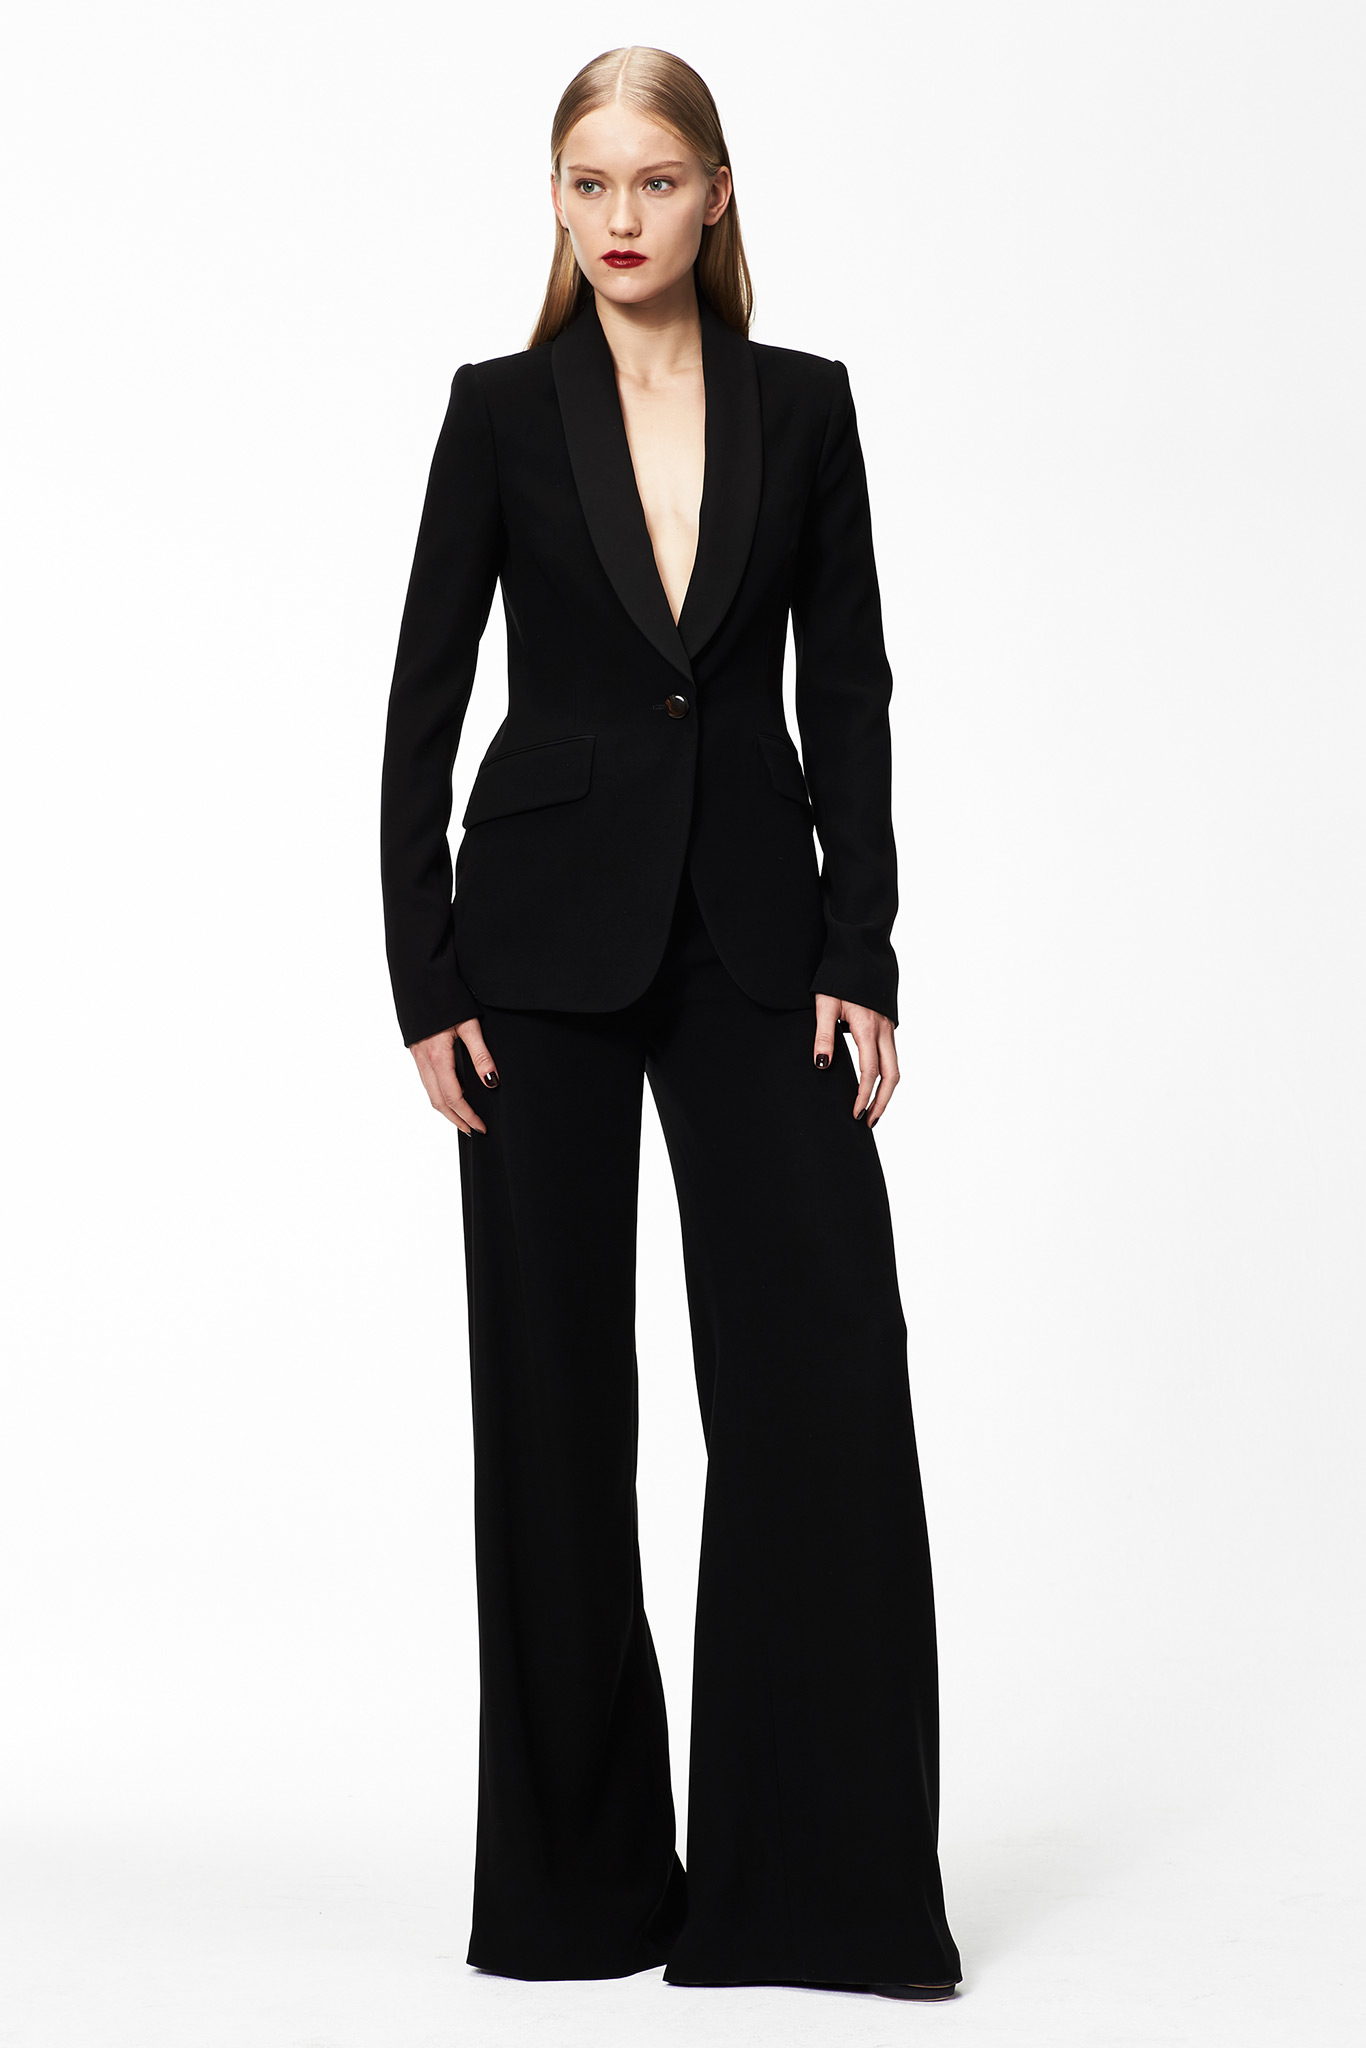 Monique Lhuillier Pre-Fall 2015